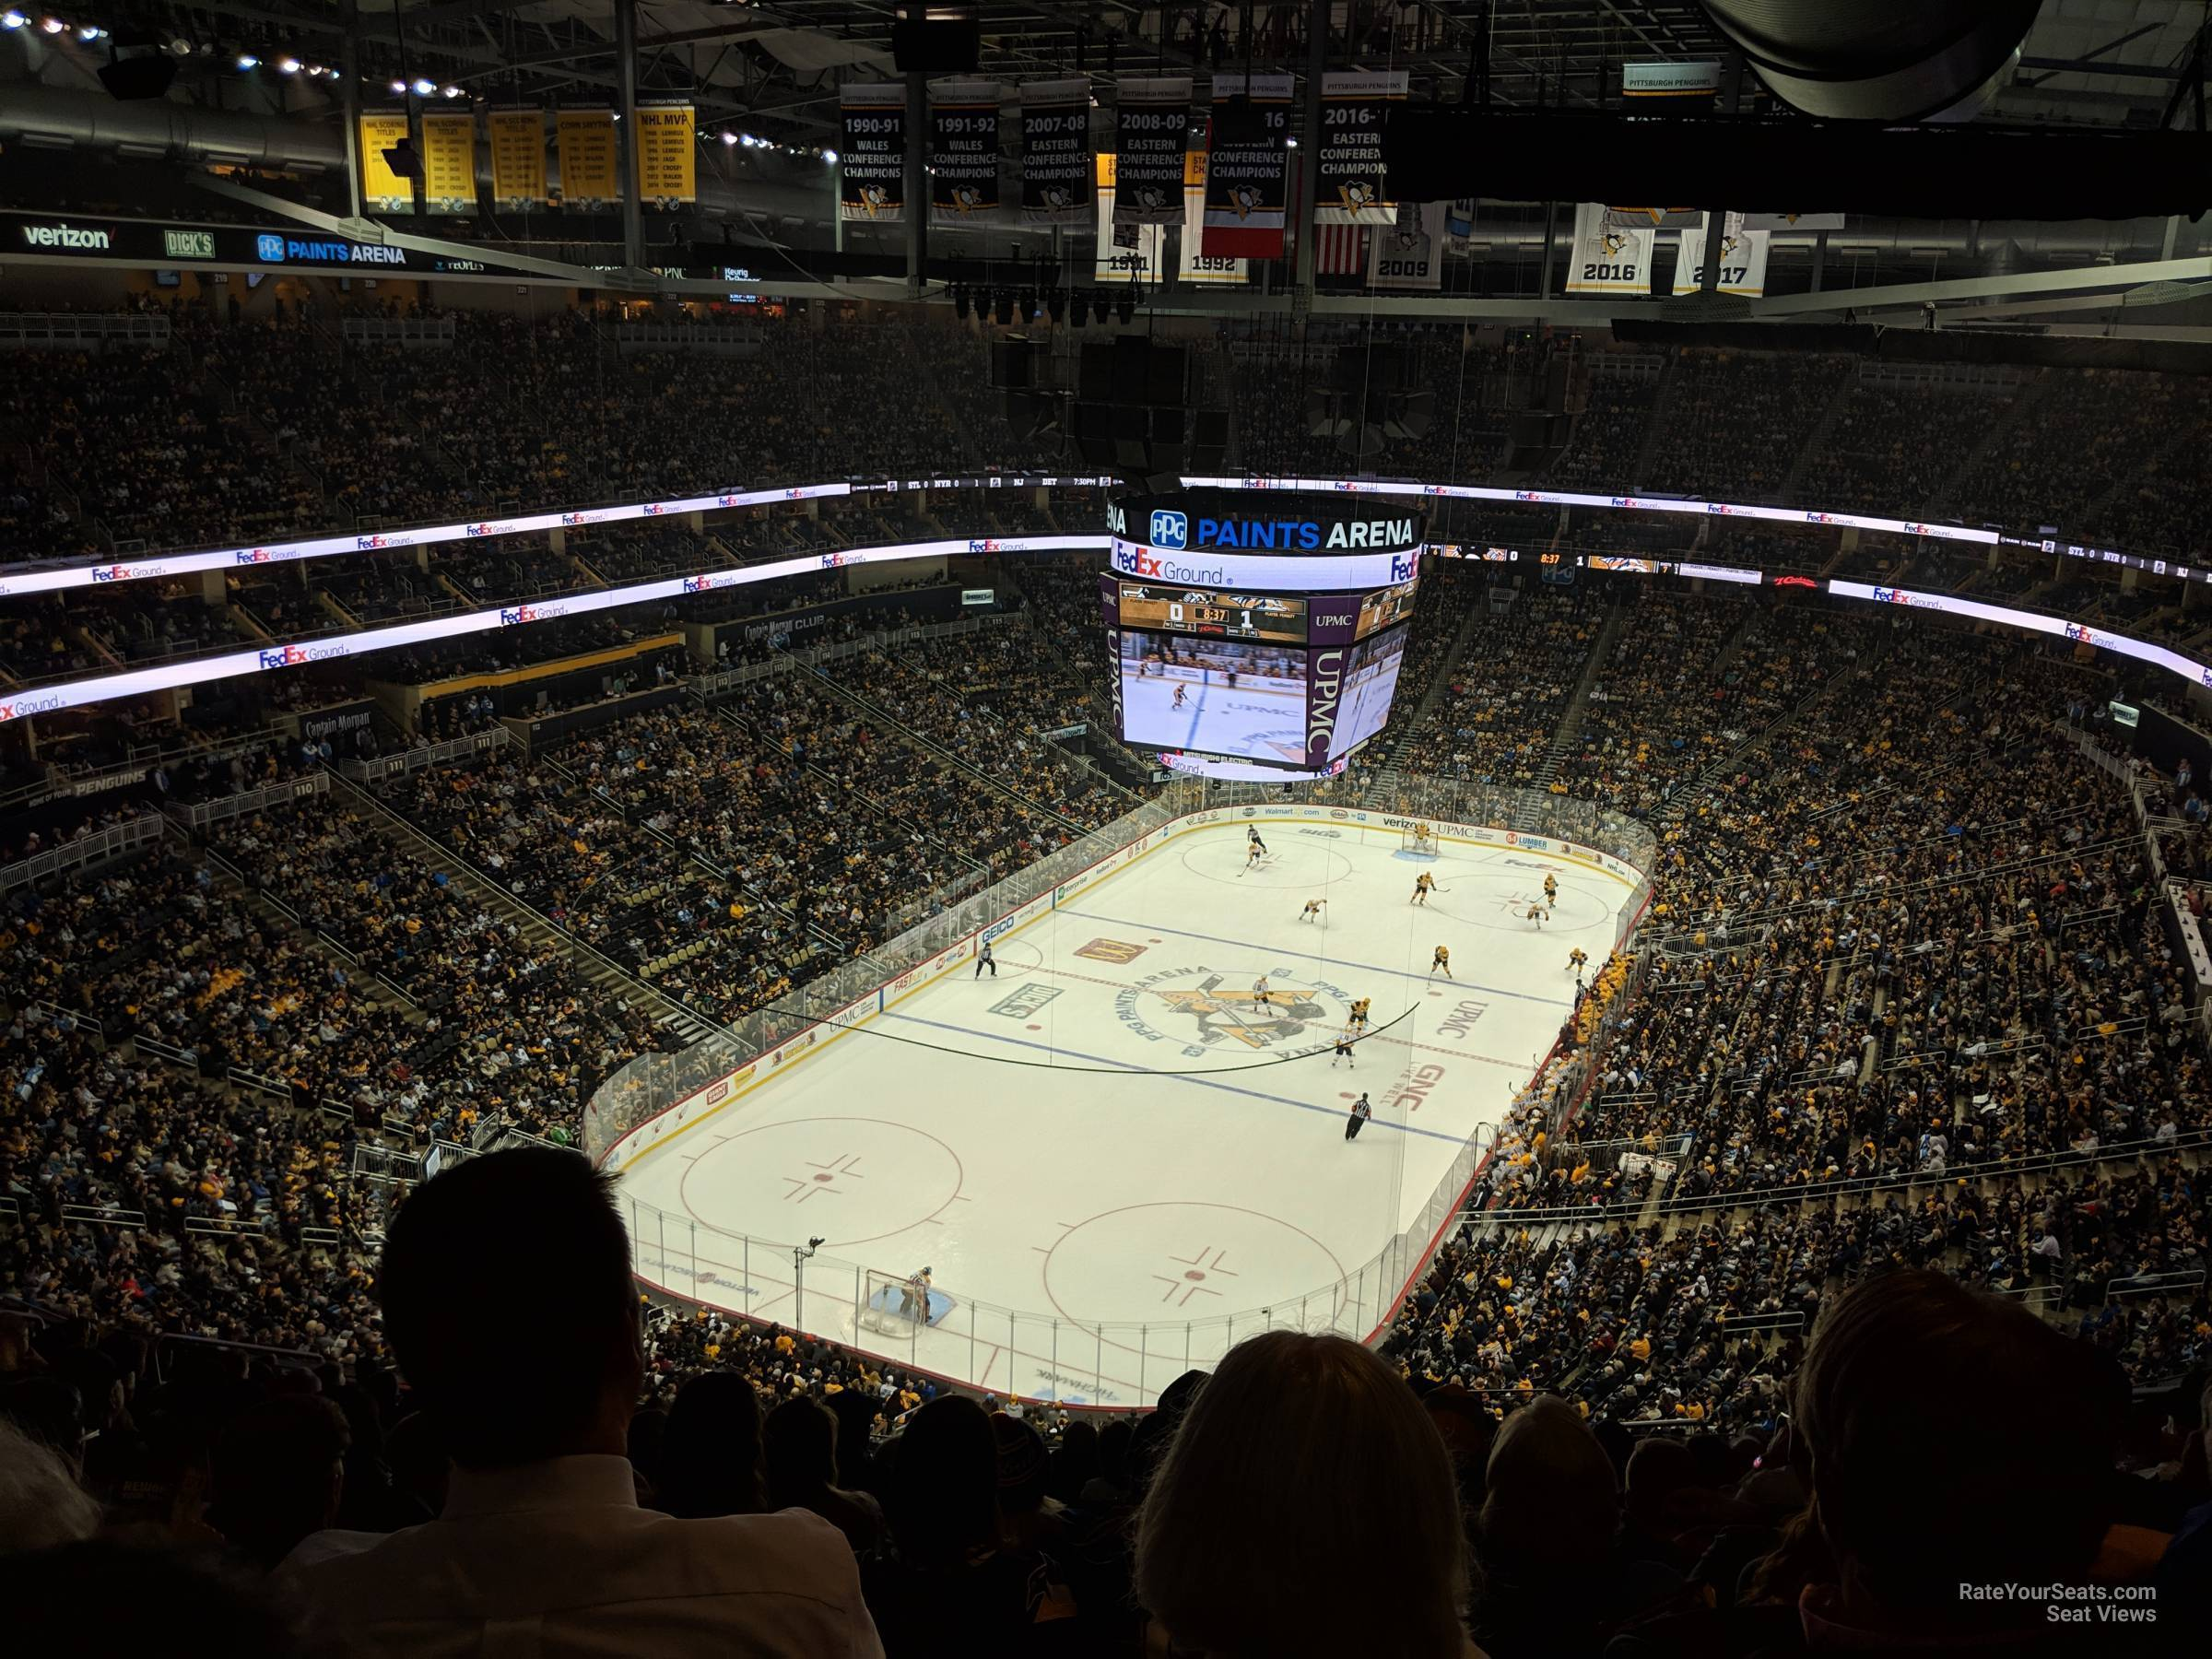 Section 209 seat view